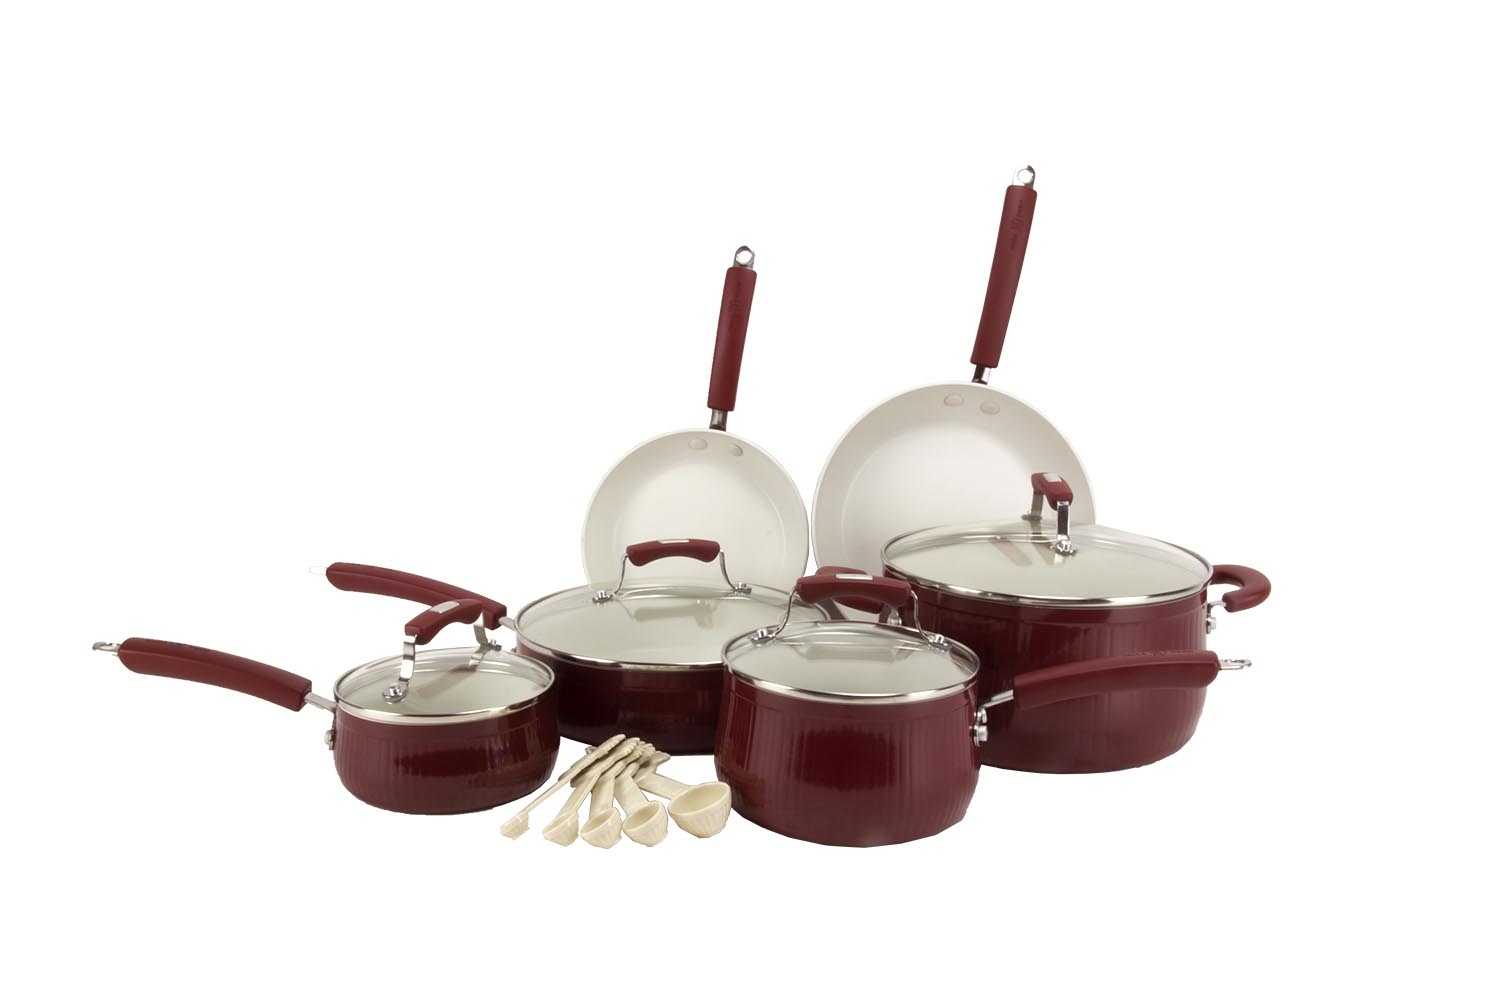 Paula Deen 15-Piece Kitchen Porcelain Cookware Set - Red